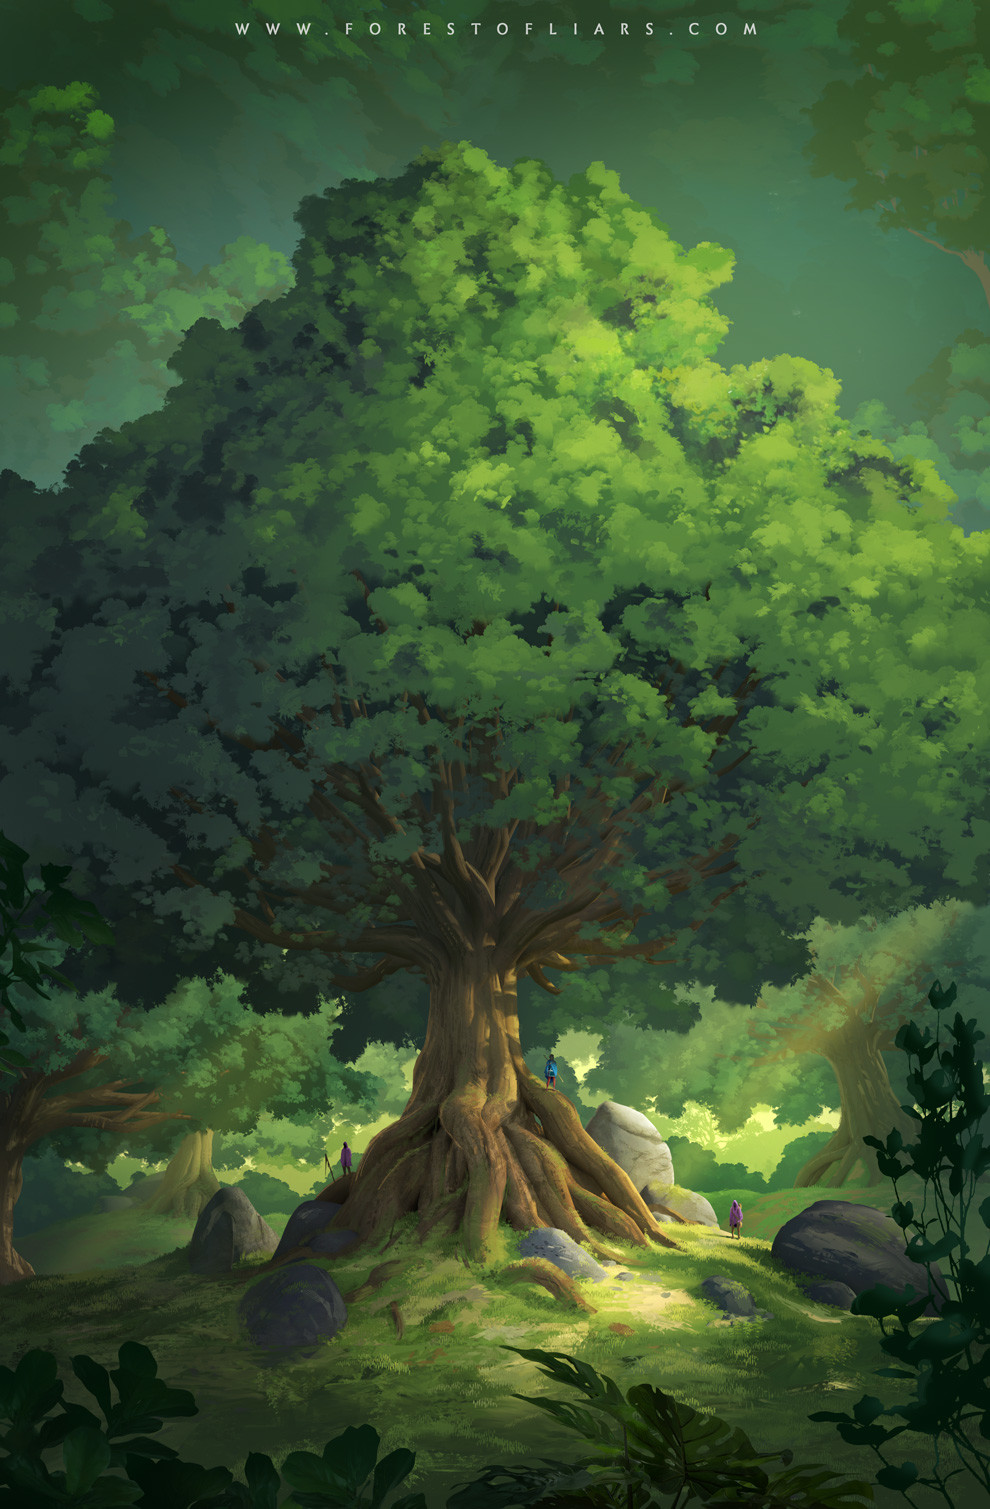 Forest of Liars : millennial trees